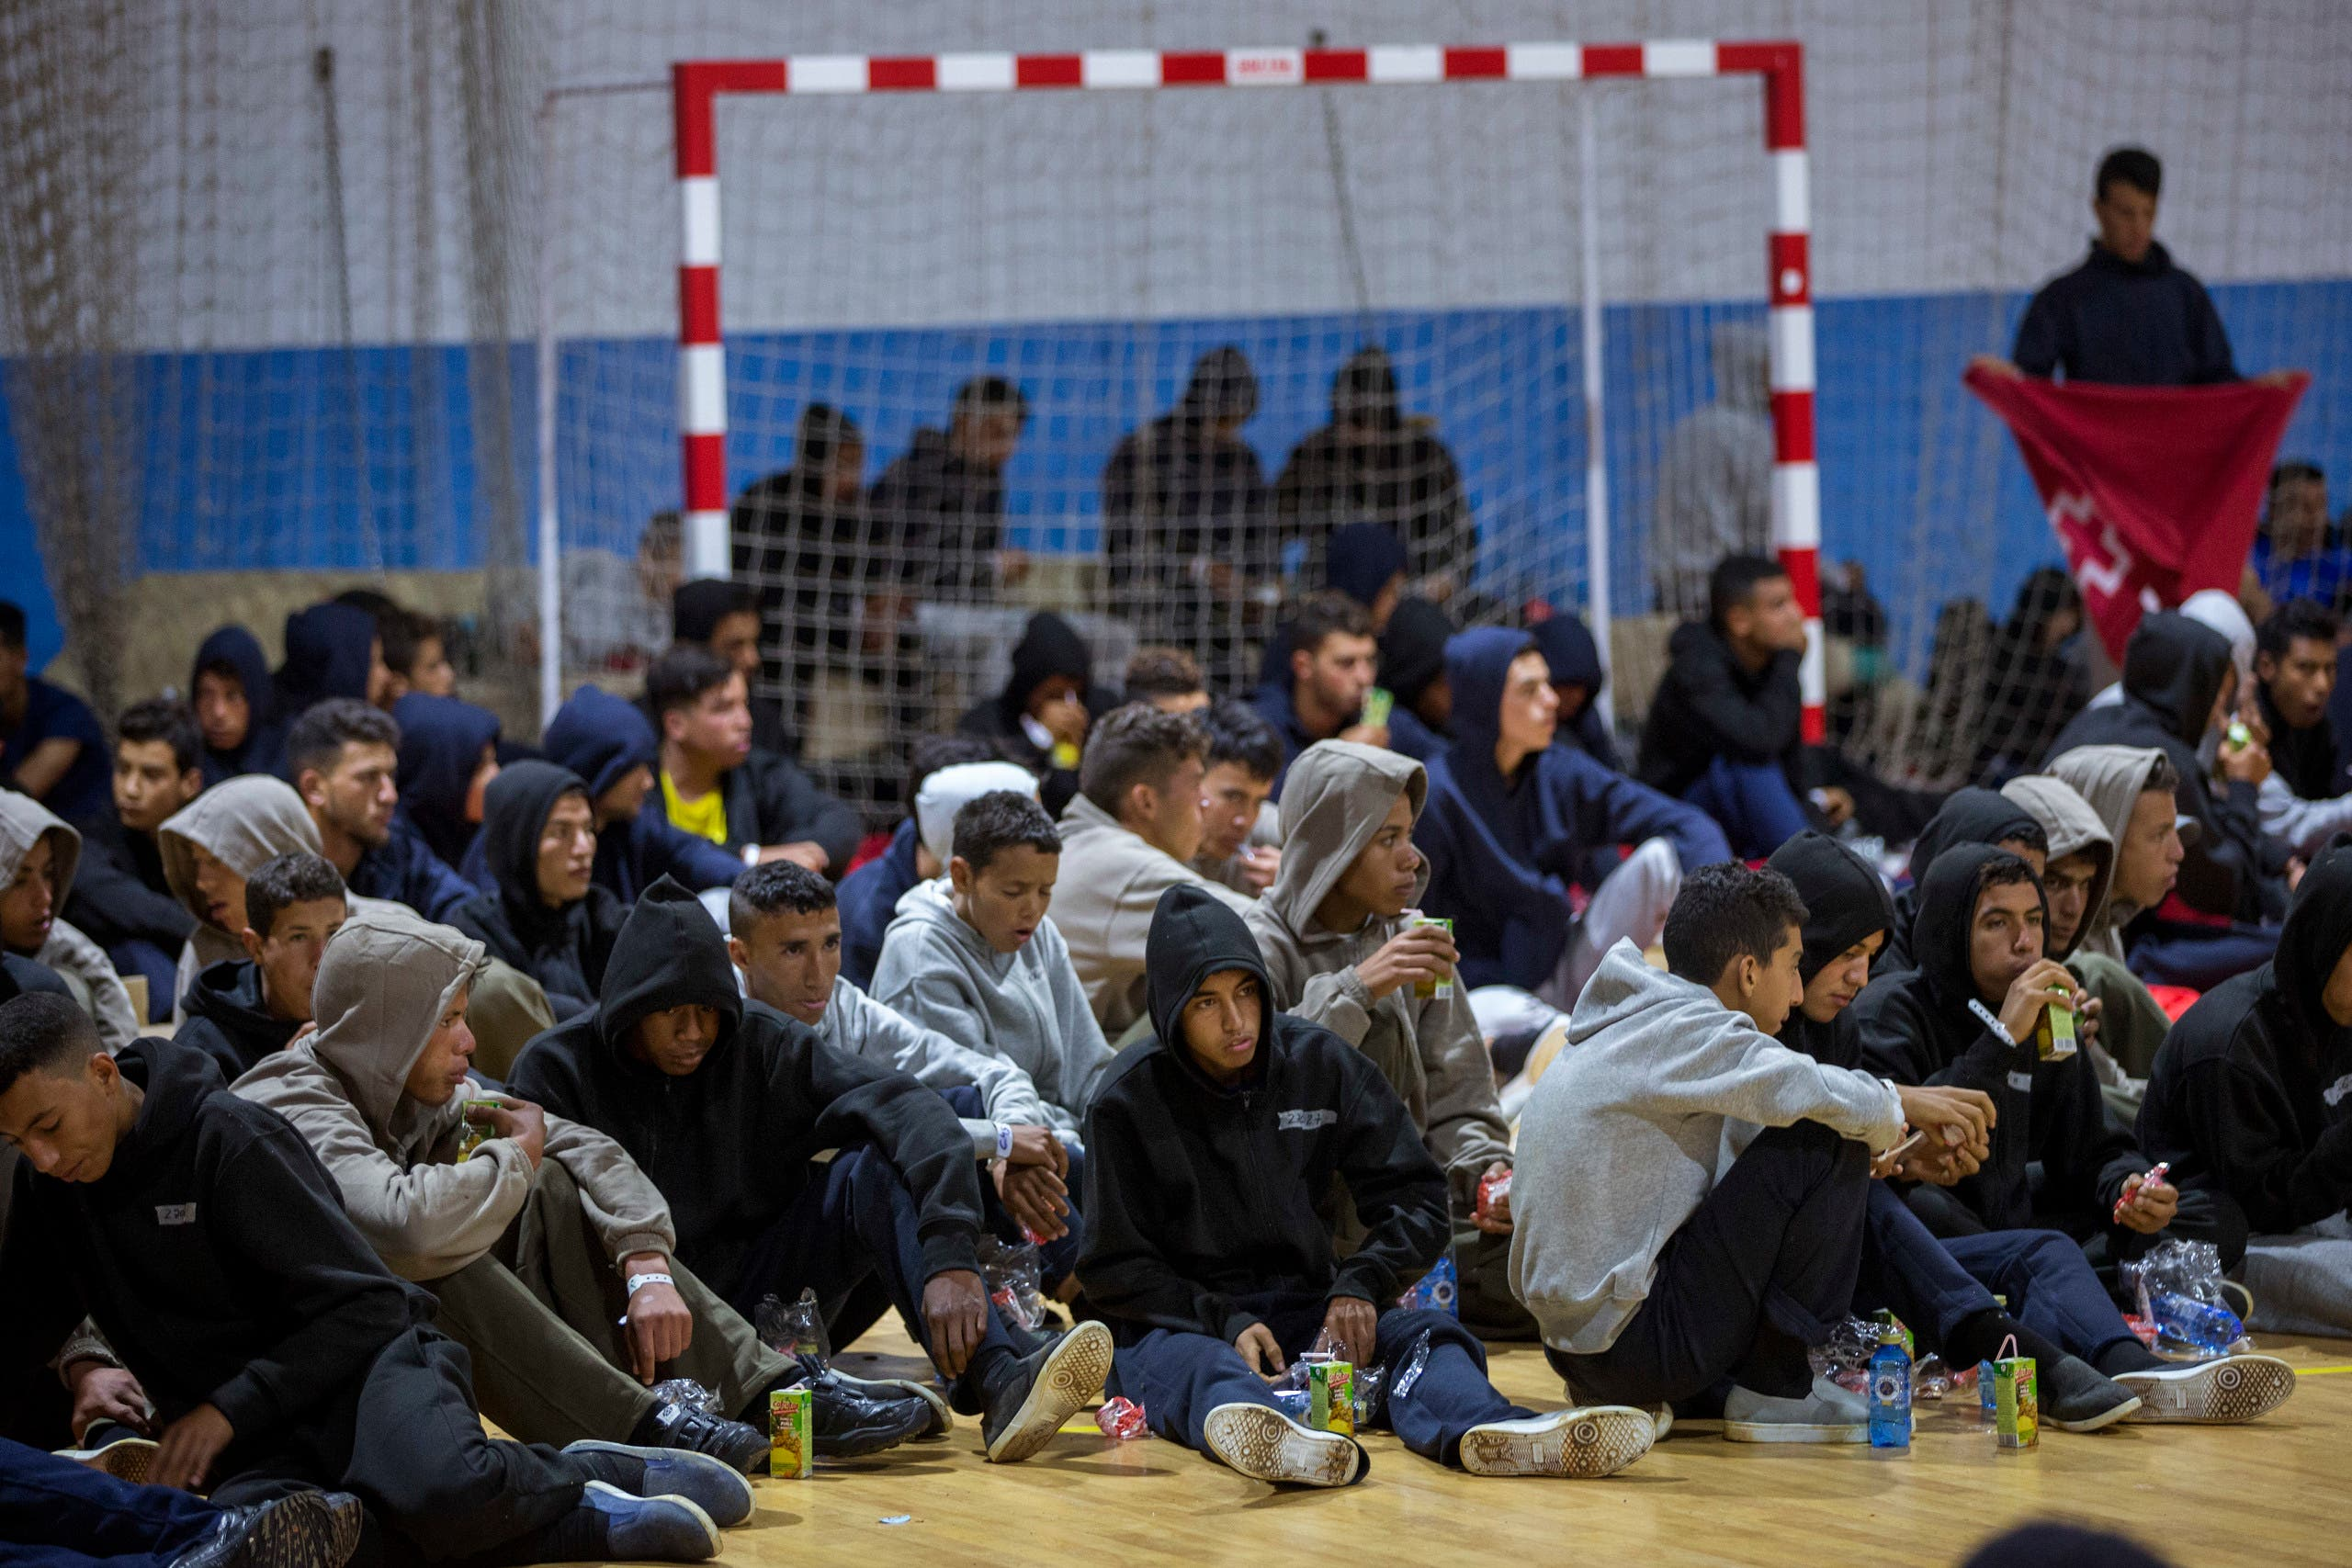 Moroccan migrants rest at a makeshift emergency center at Barbate's municipal sports center, in the south of Spain, after being rescued by Spain's Maritime Rescue Service in the Strait of Gibraltar, Thursday, June 28, 2018. (AP)